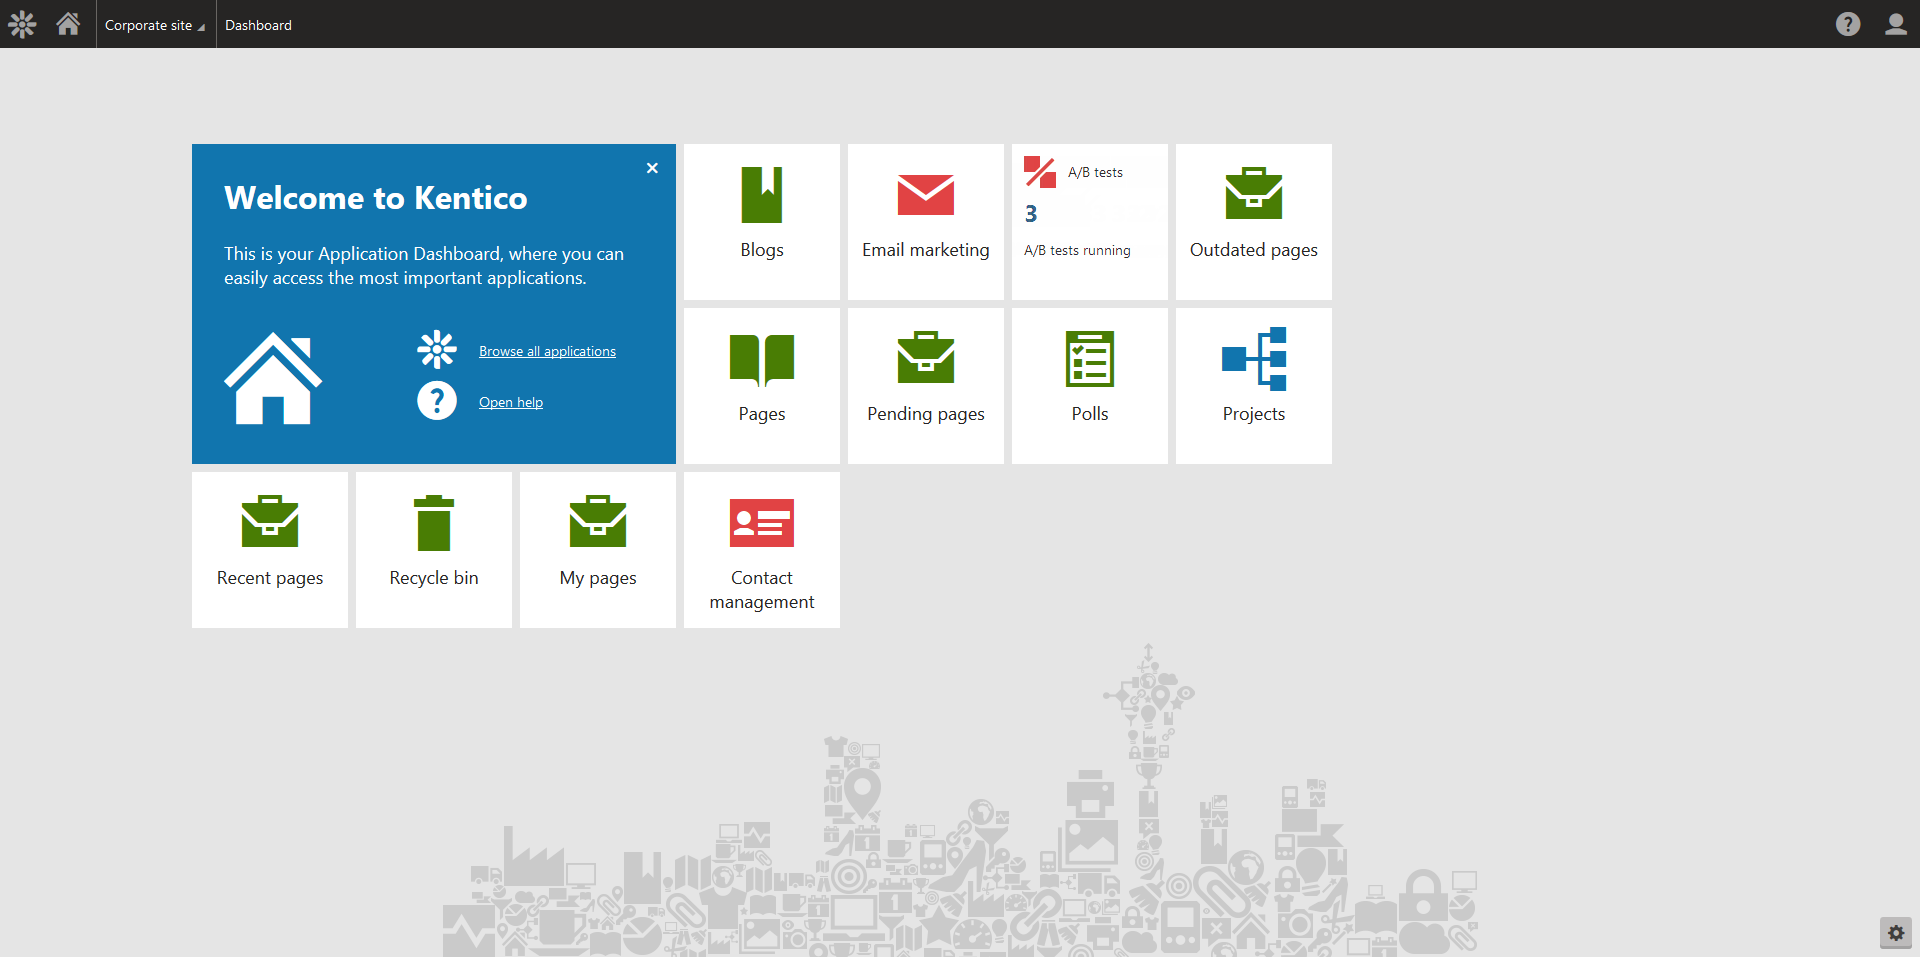 Users can customize the welcome page of Xperience's dashboard to show only what they need